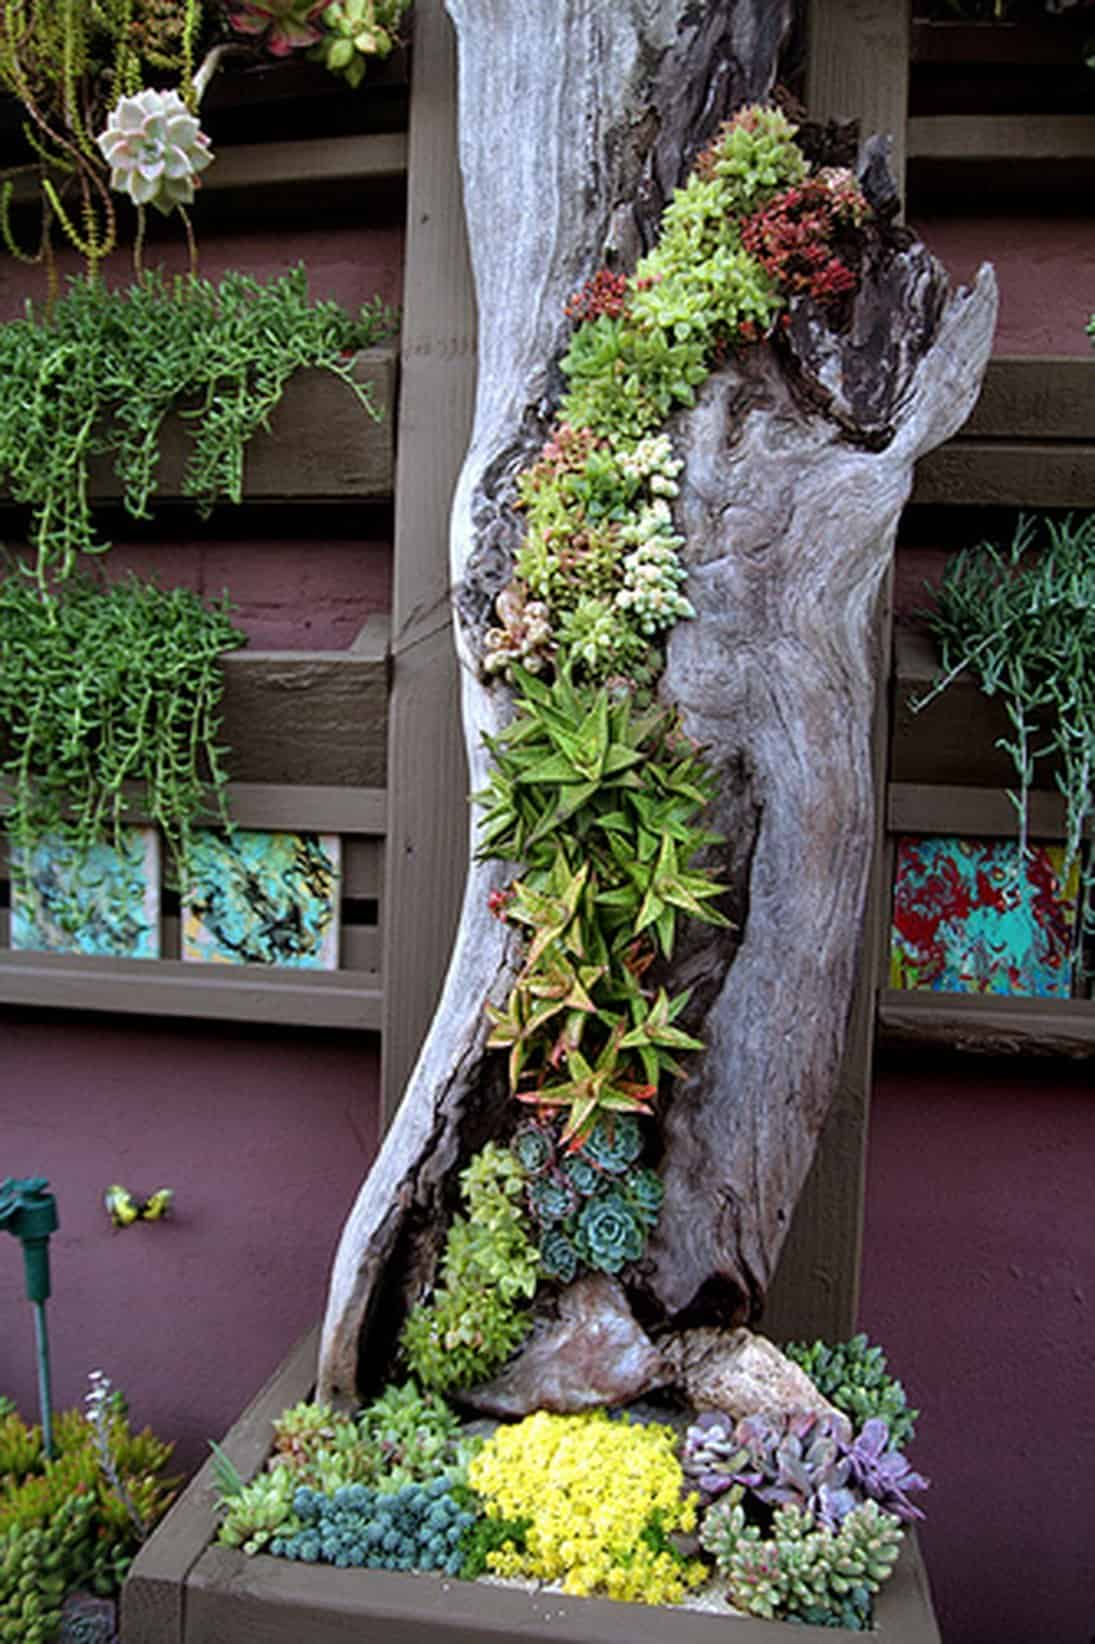 20-a-juxtaposition-of-old-and-new-vertical-gardens